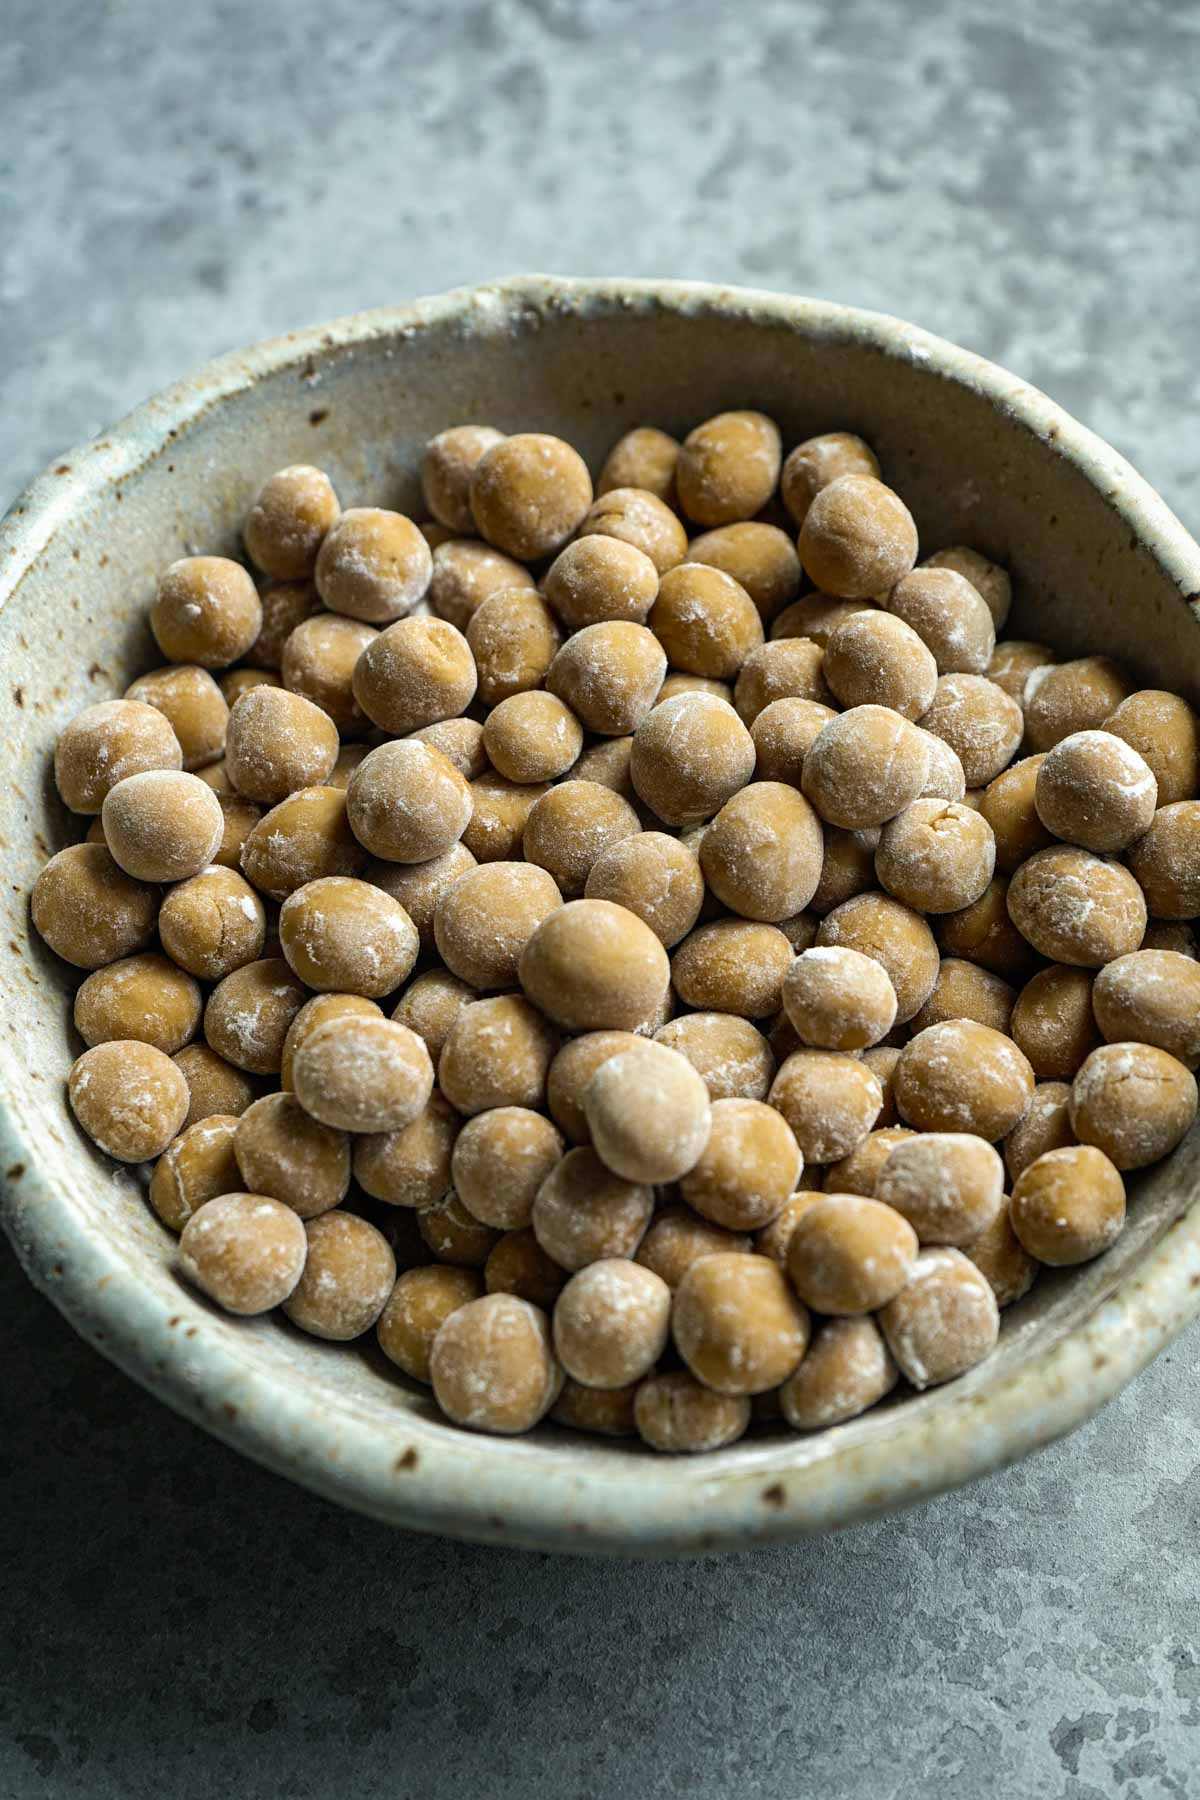 Dried boba pearl in a bowl.